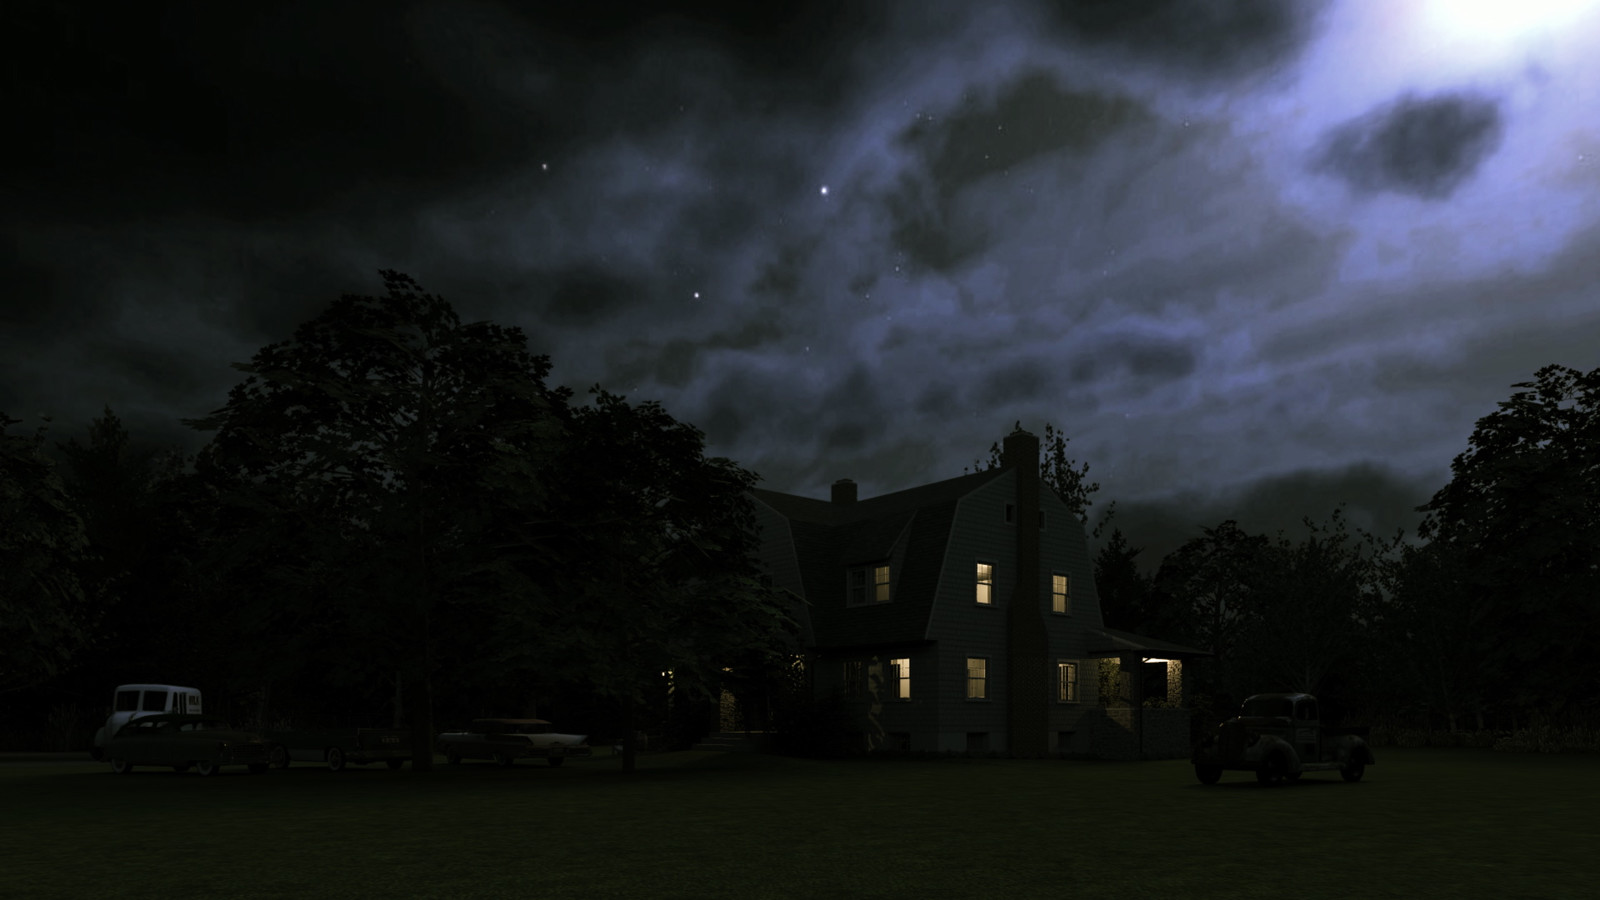 """""""Mason Farm - Moonlight Sonata"""" Full Moon Collection  30 Masonfarm HD1080 27b - iP Kodac  """"SketchUp to LayOut"""" The Mason Farm Renders for the launching of the new book """"SketchUp to LayOut"""" http://bit.ly/2j0d0Wh by MasterSketchup."""